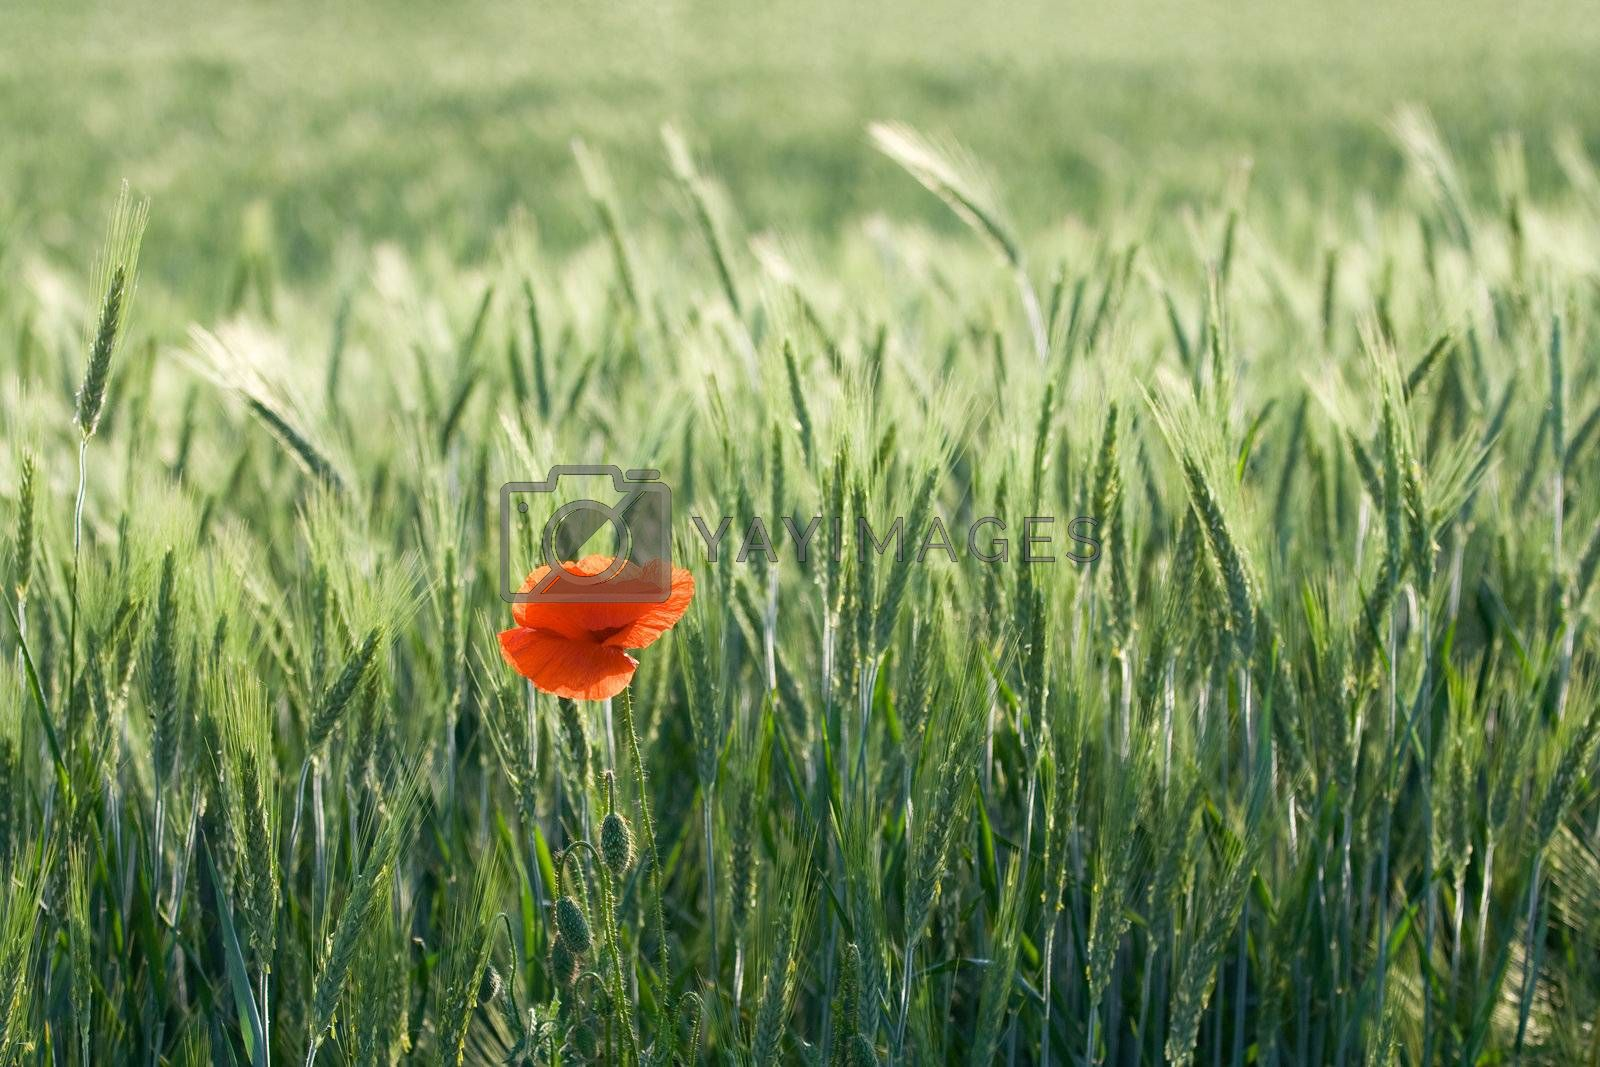 Single red poppy among cereals by SergeyAK